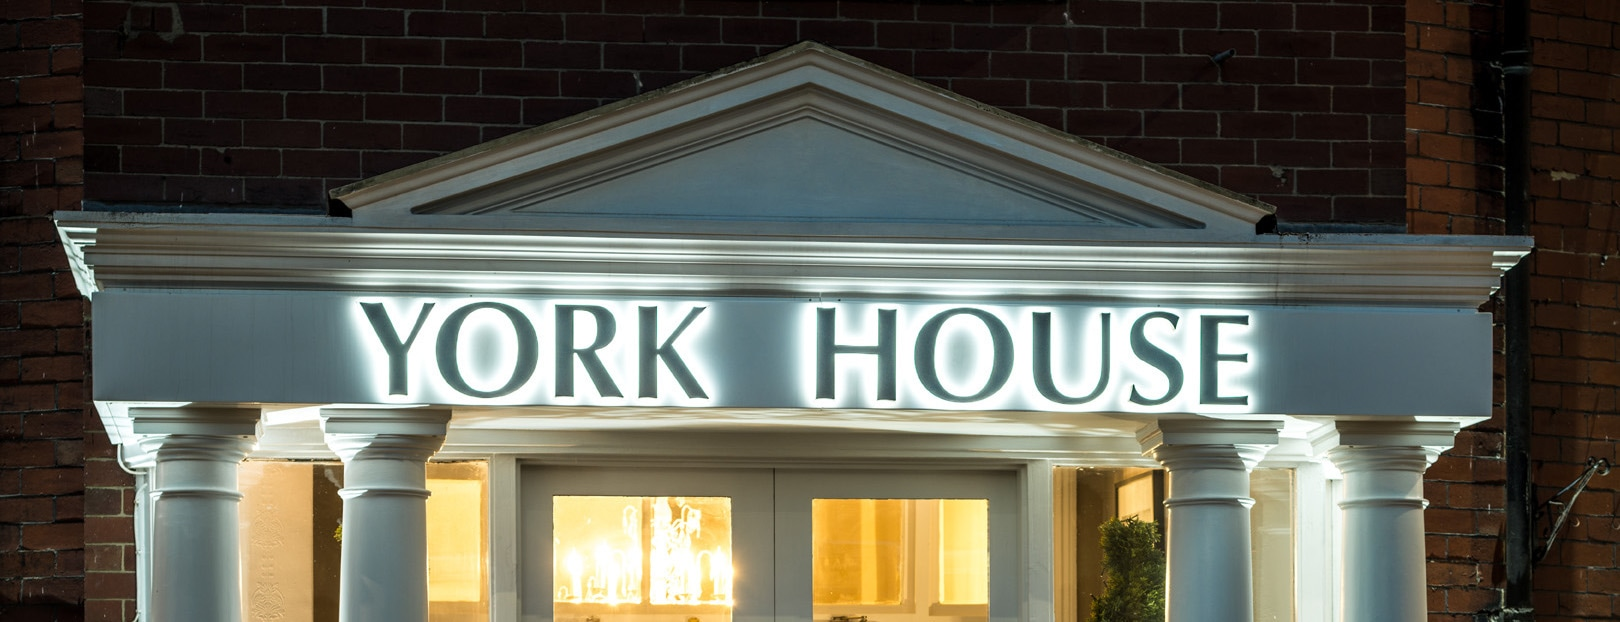 York House Hotel Sign